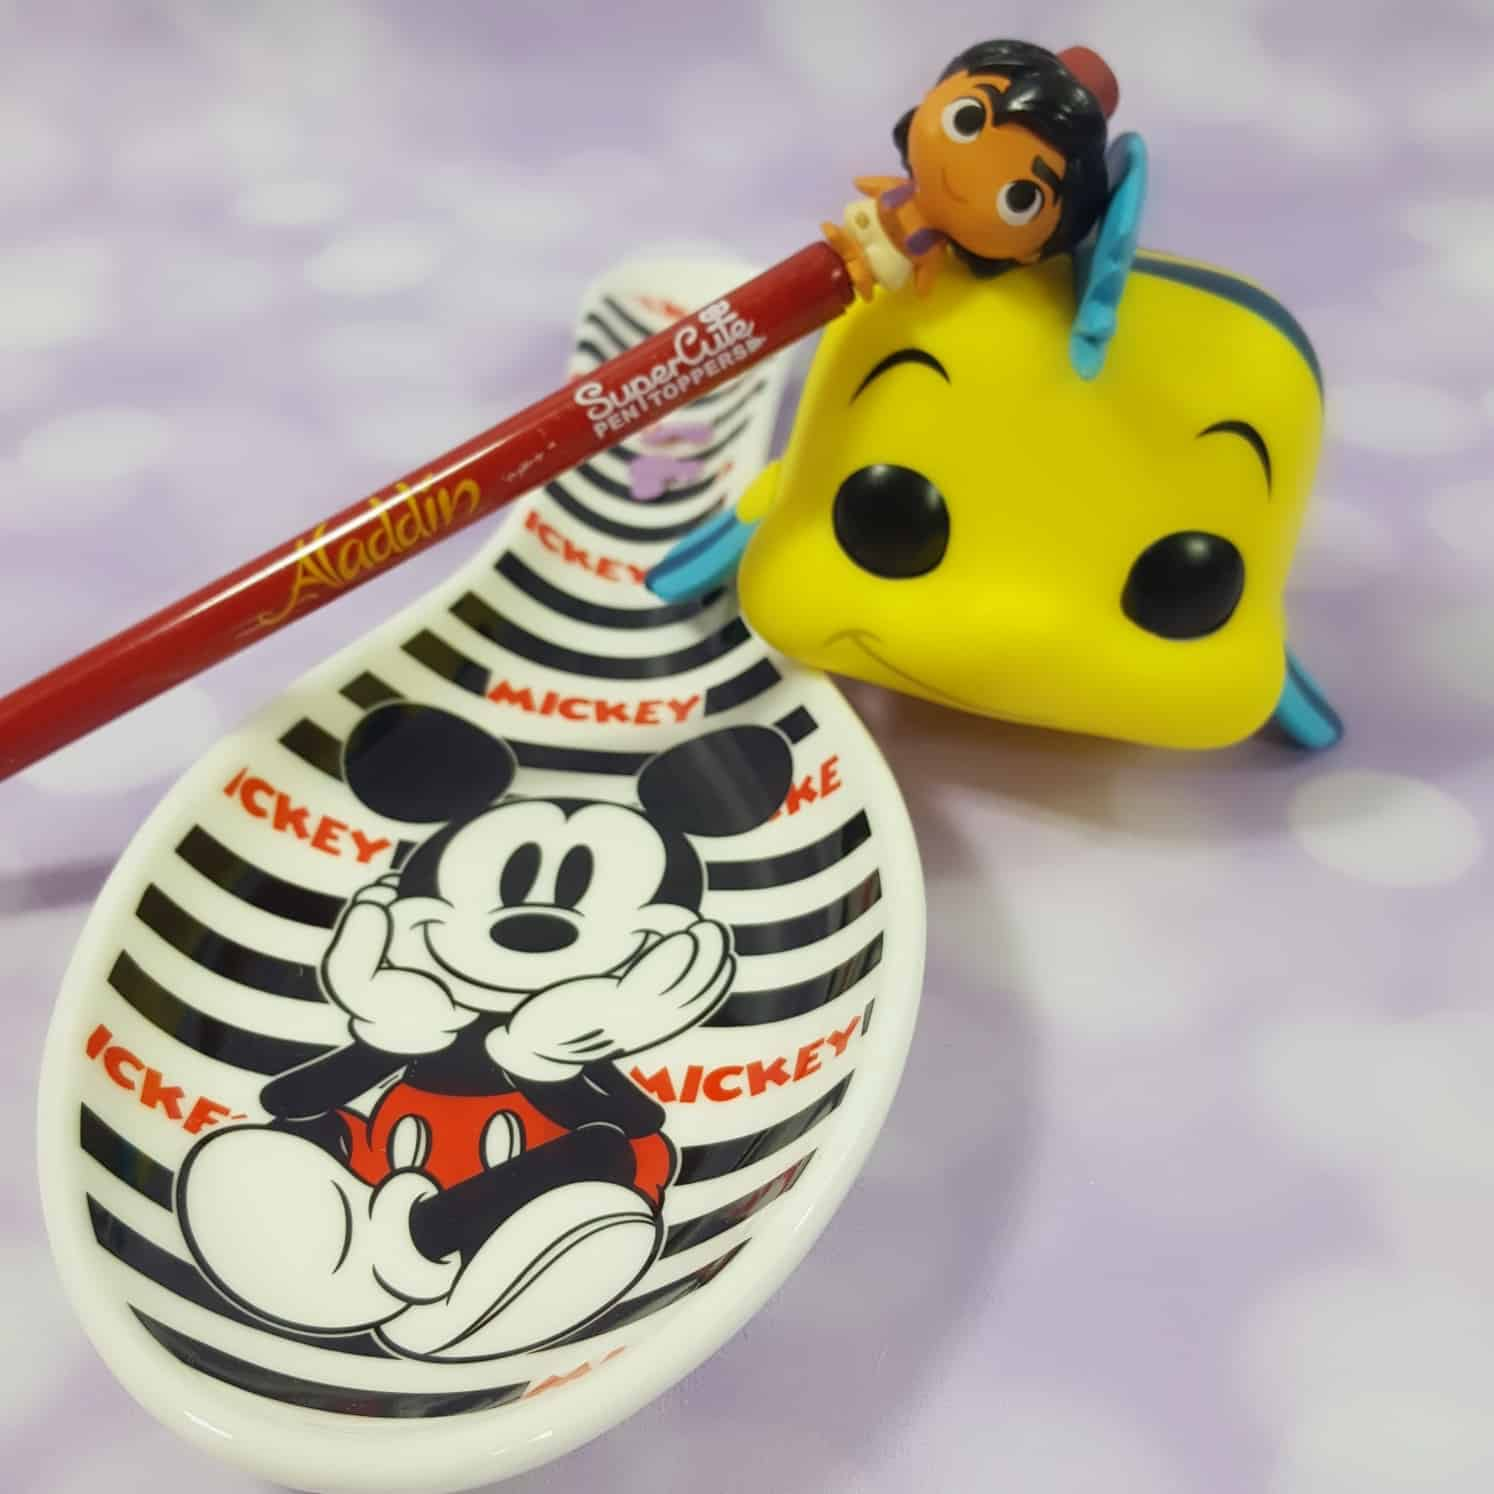 Mickey Monthly Subscription Box Review + Coupon – March 2018